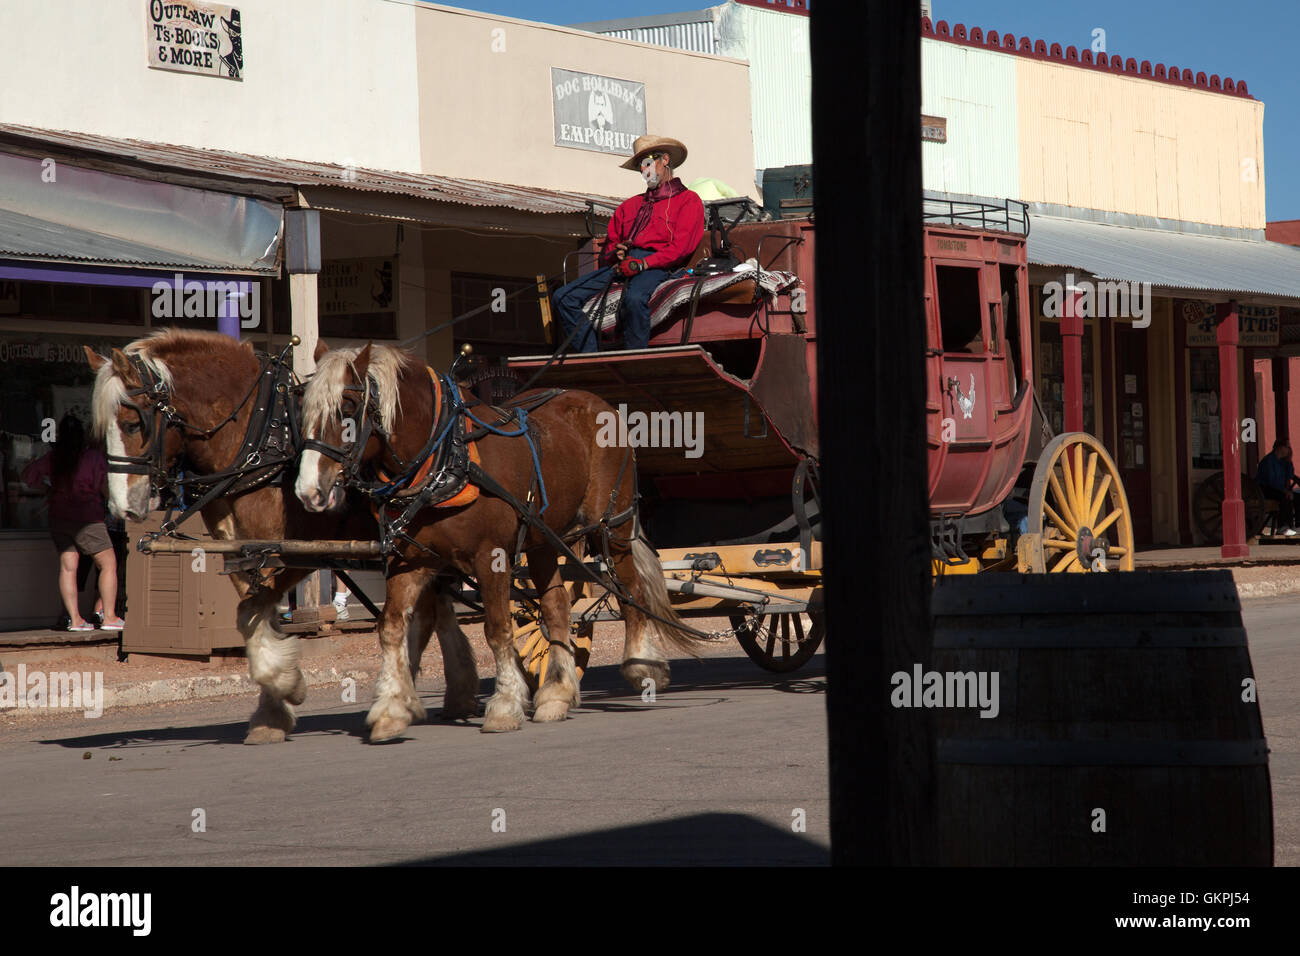 A stage coach and driver on Main Street in Tombstone, Arizona. - Stock Image